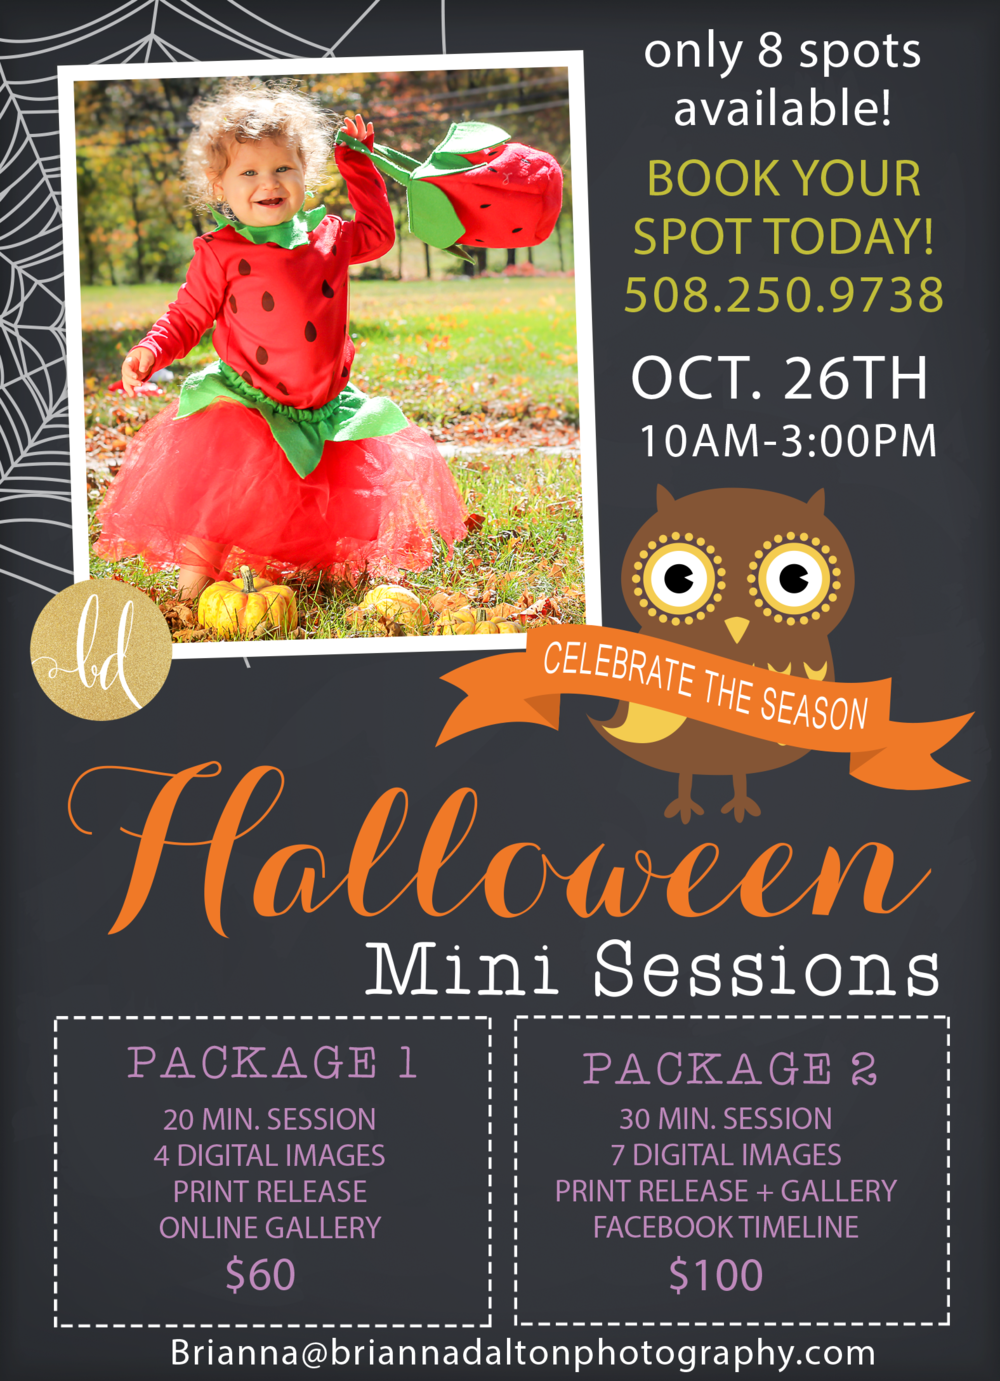 Halloween Mini Sessions  October 1st-October 26th 2014